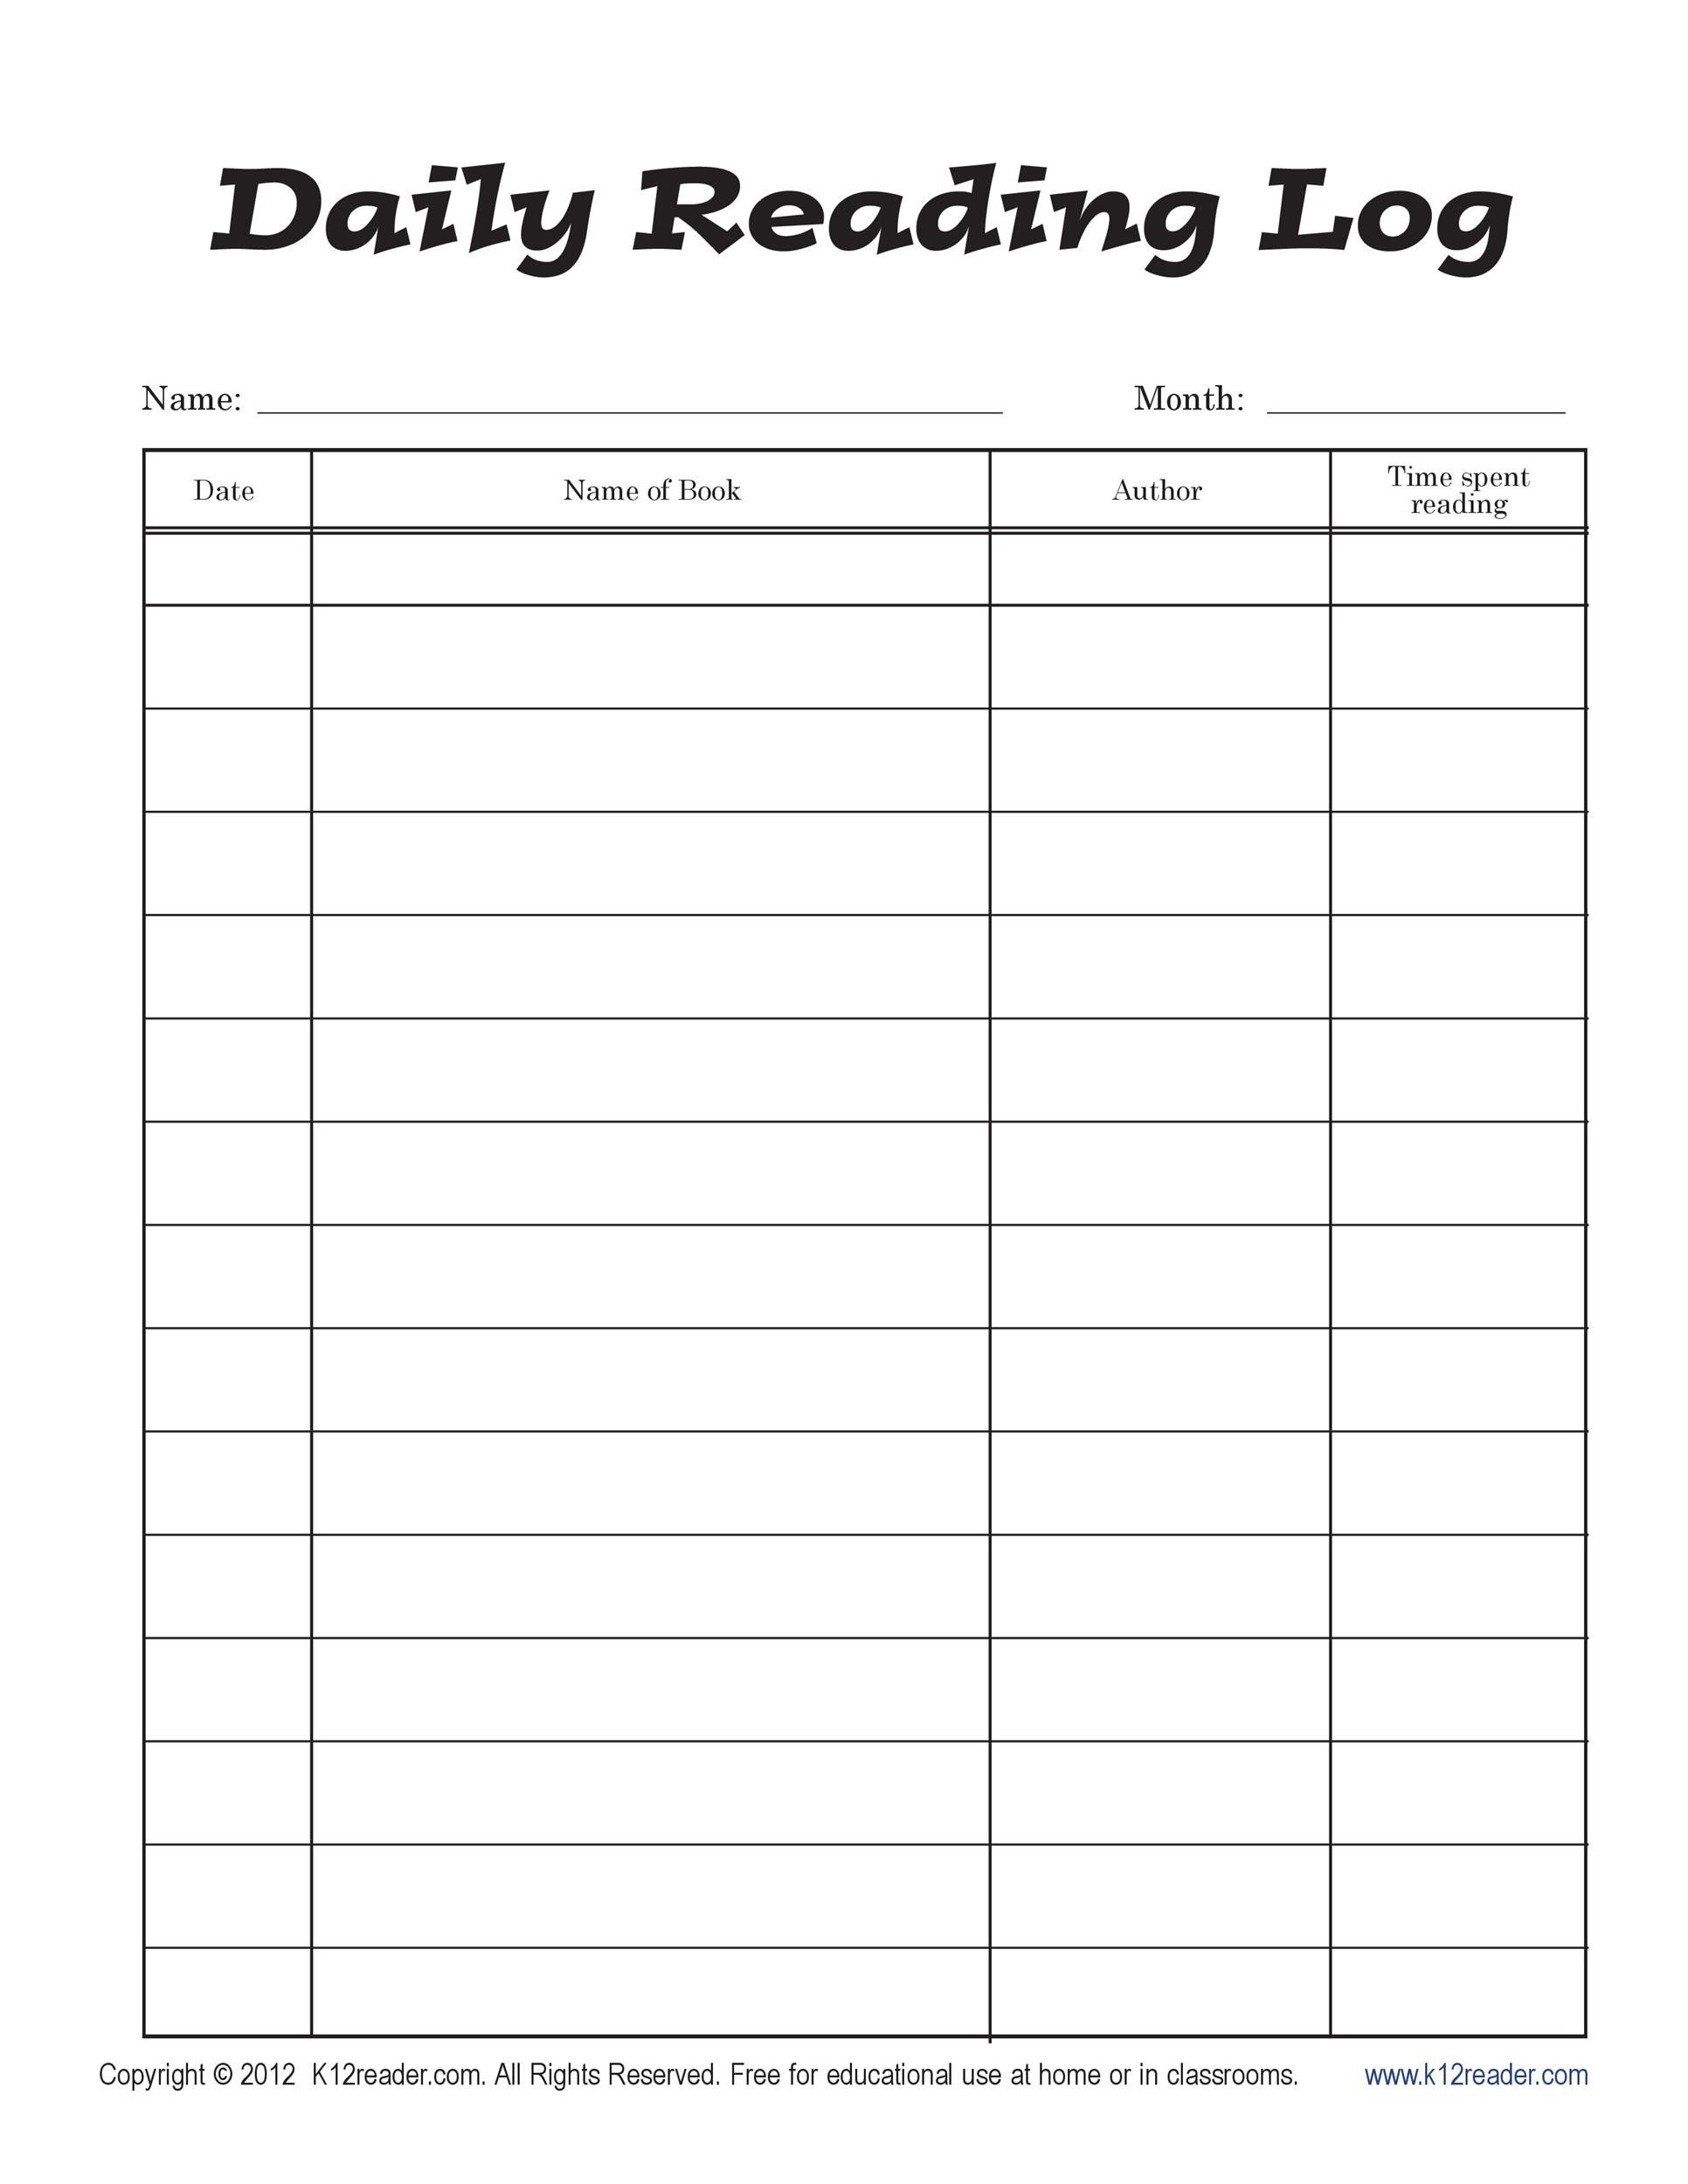 photo relating to Free Printable Reading Logs named 47 Printable Looking at Log Templates for Youngsters, Heart College